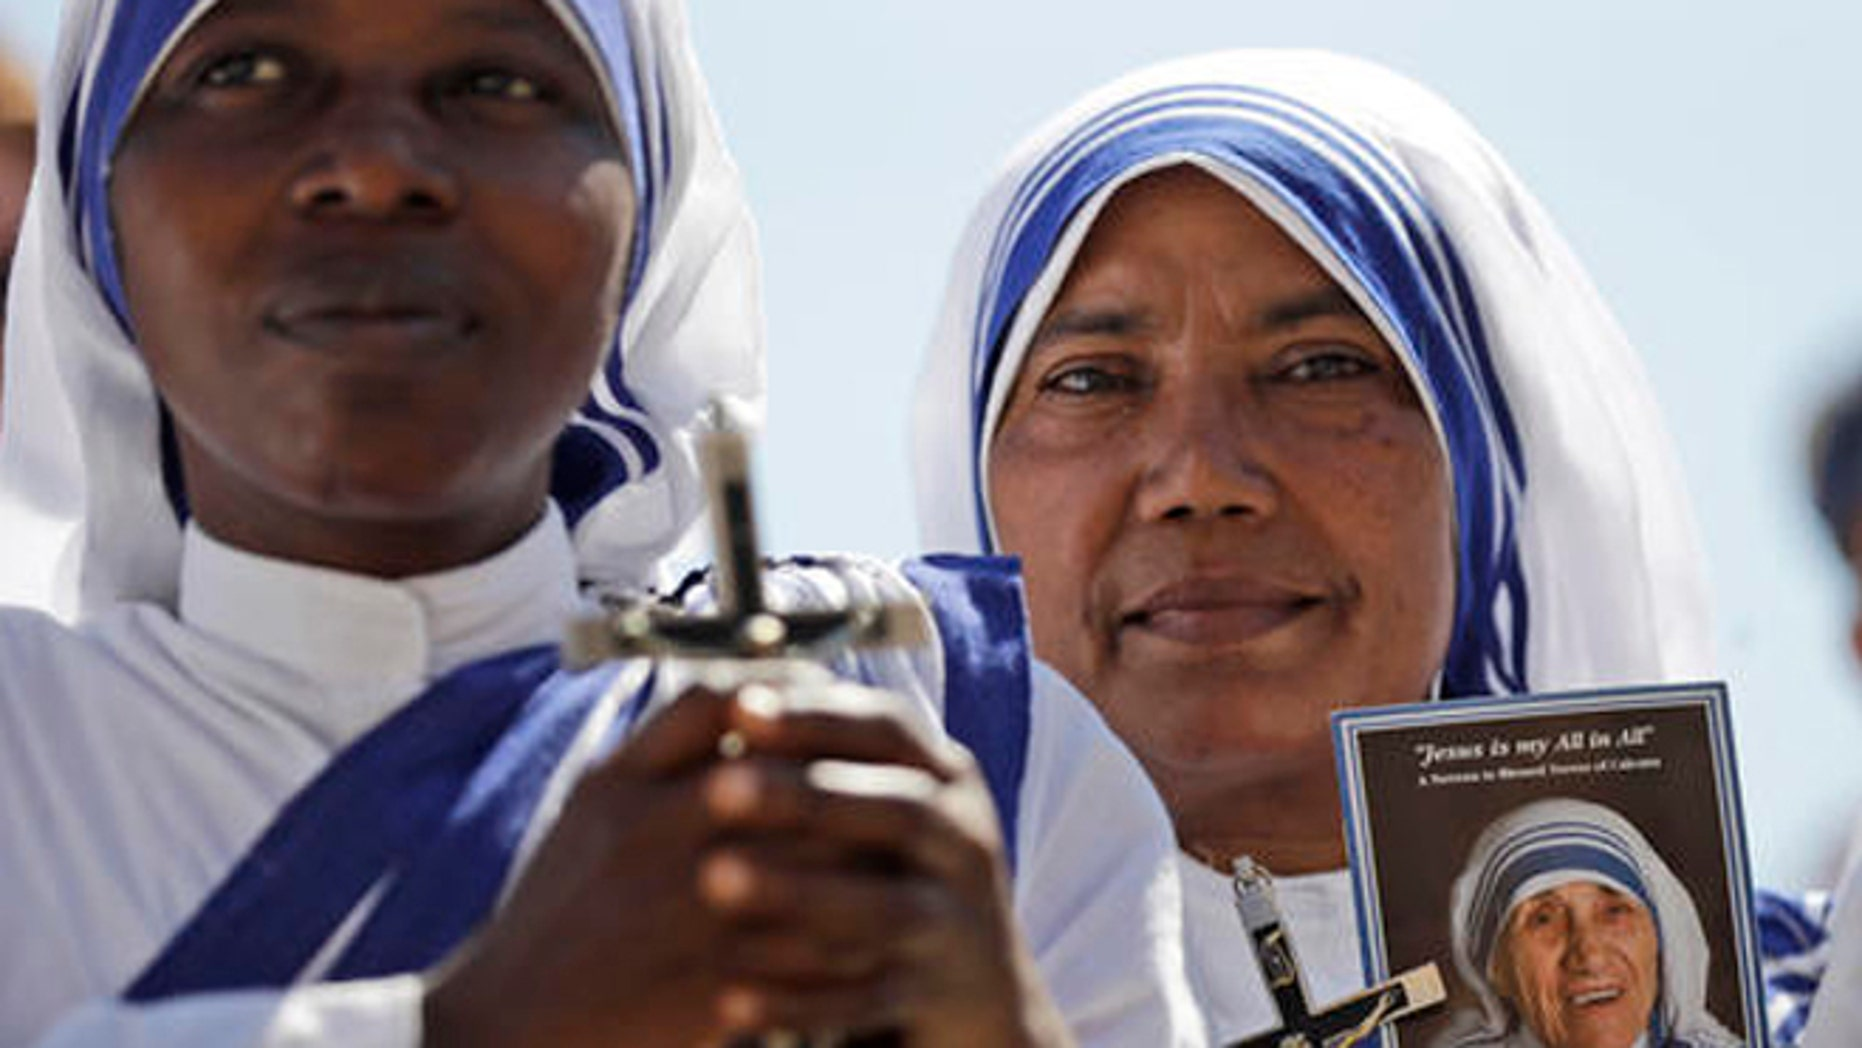 Missionaries of Charity nuns holds a photo of Mother Teresa in St. Peter's Square at the Vatican during a jubilee audience for workers and volunteers of mercy led by Pope Francis, Saturday, Sept. 3, 2016. The square hosts a ceremony Sunday expected to draw hundreds of thousands of admirers of Mother Teresa, a nun who before her death in 1997, cared for the destitute who were dying in the streets of India. (AP Photo/Alessandra Tarantino)